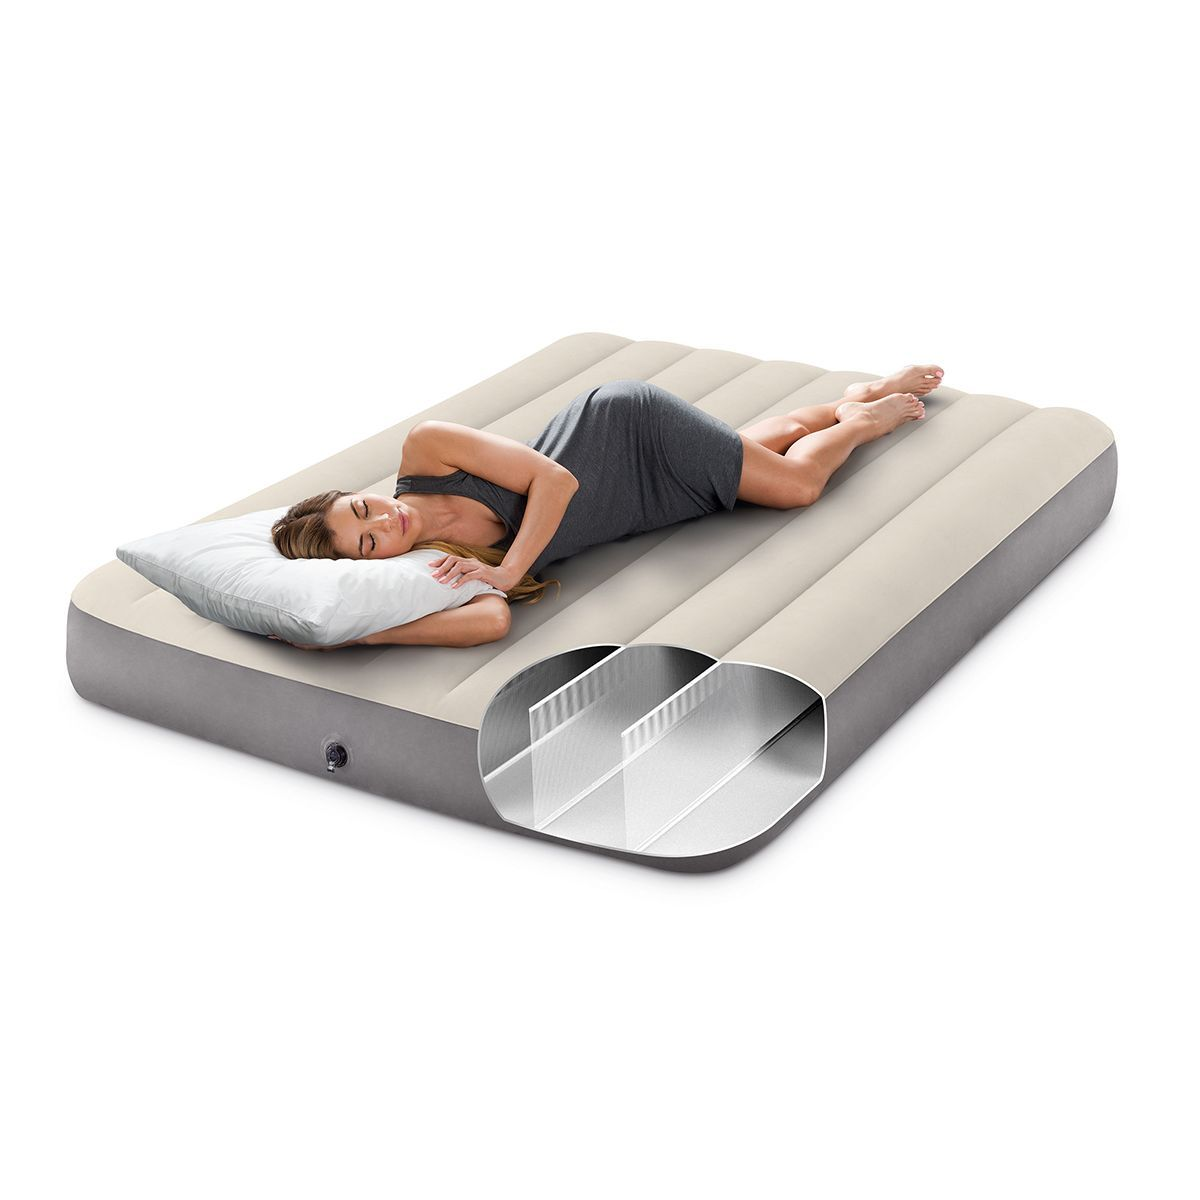 Matelas Gonflable Downy Fiber Tech 2 Places Intex Taille